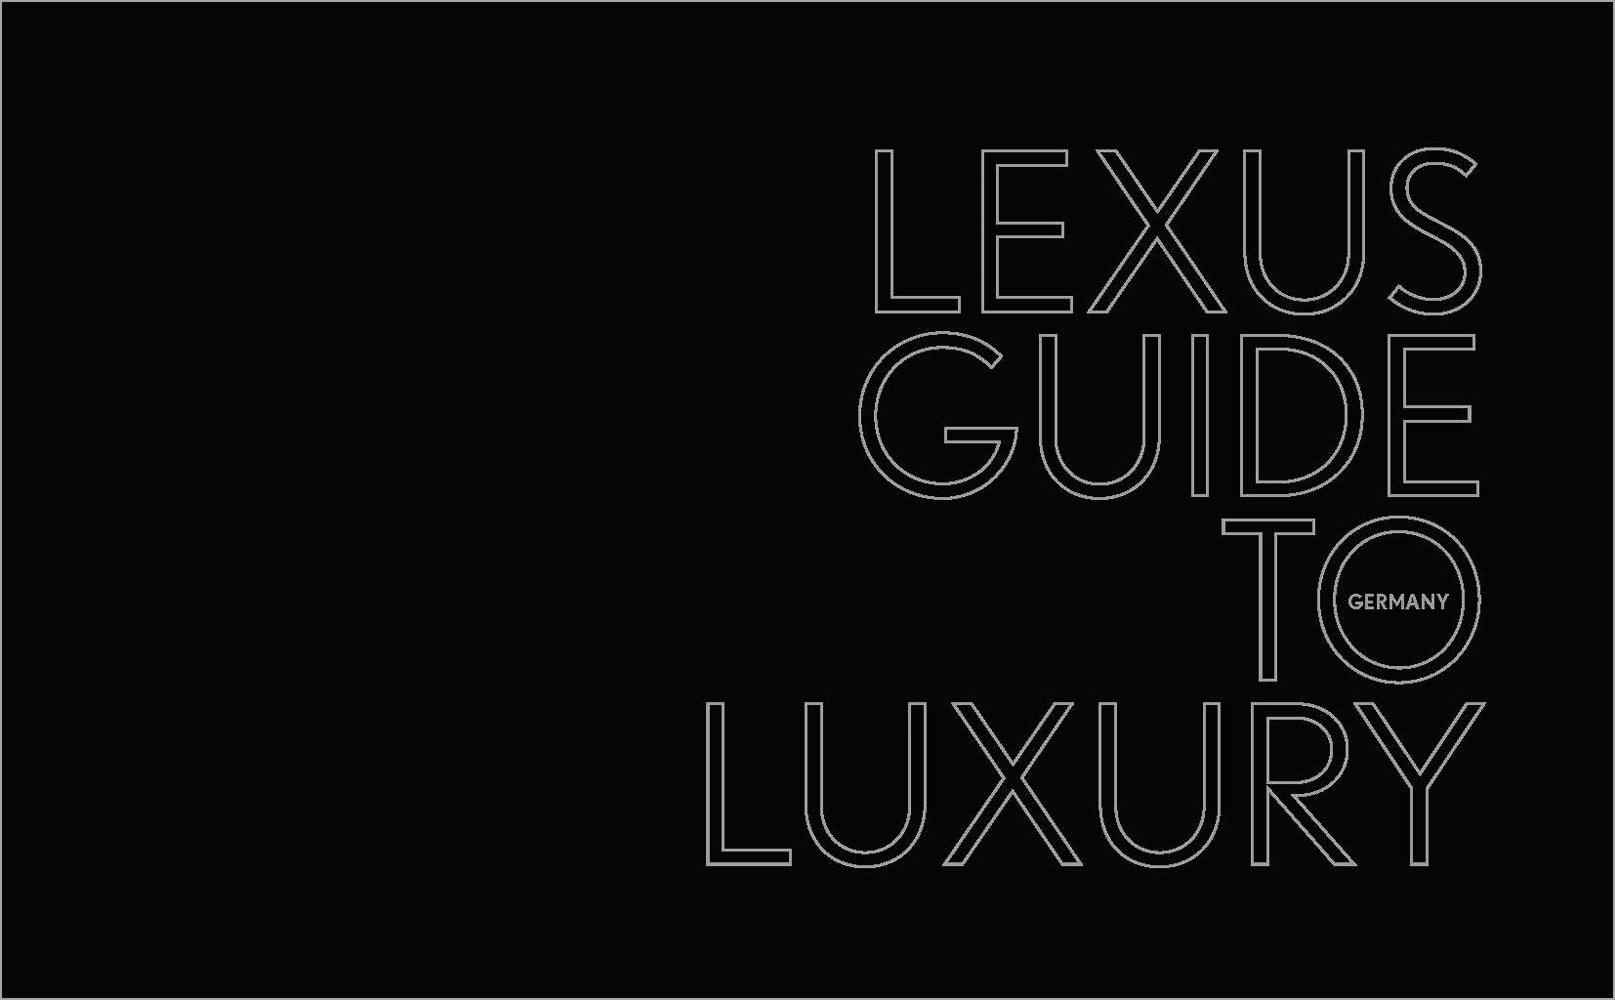 Lexus Guide to Luxury